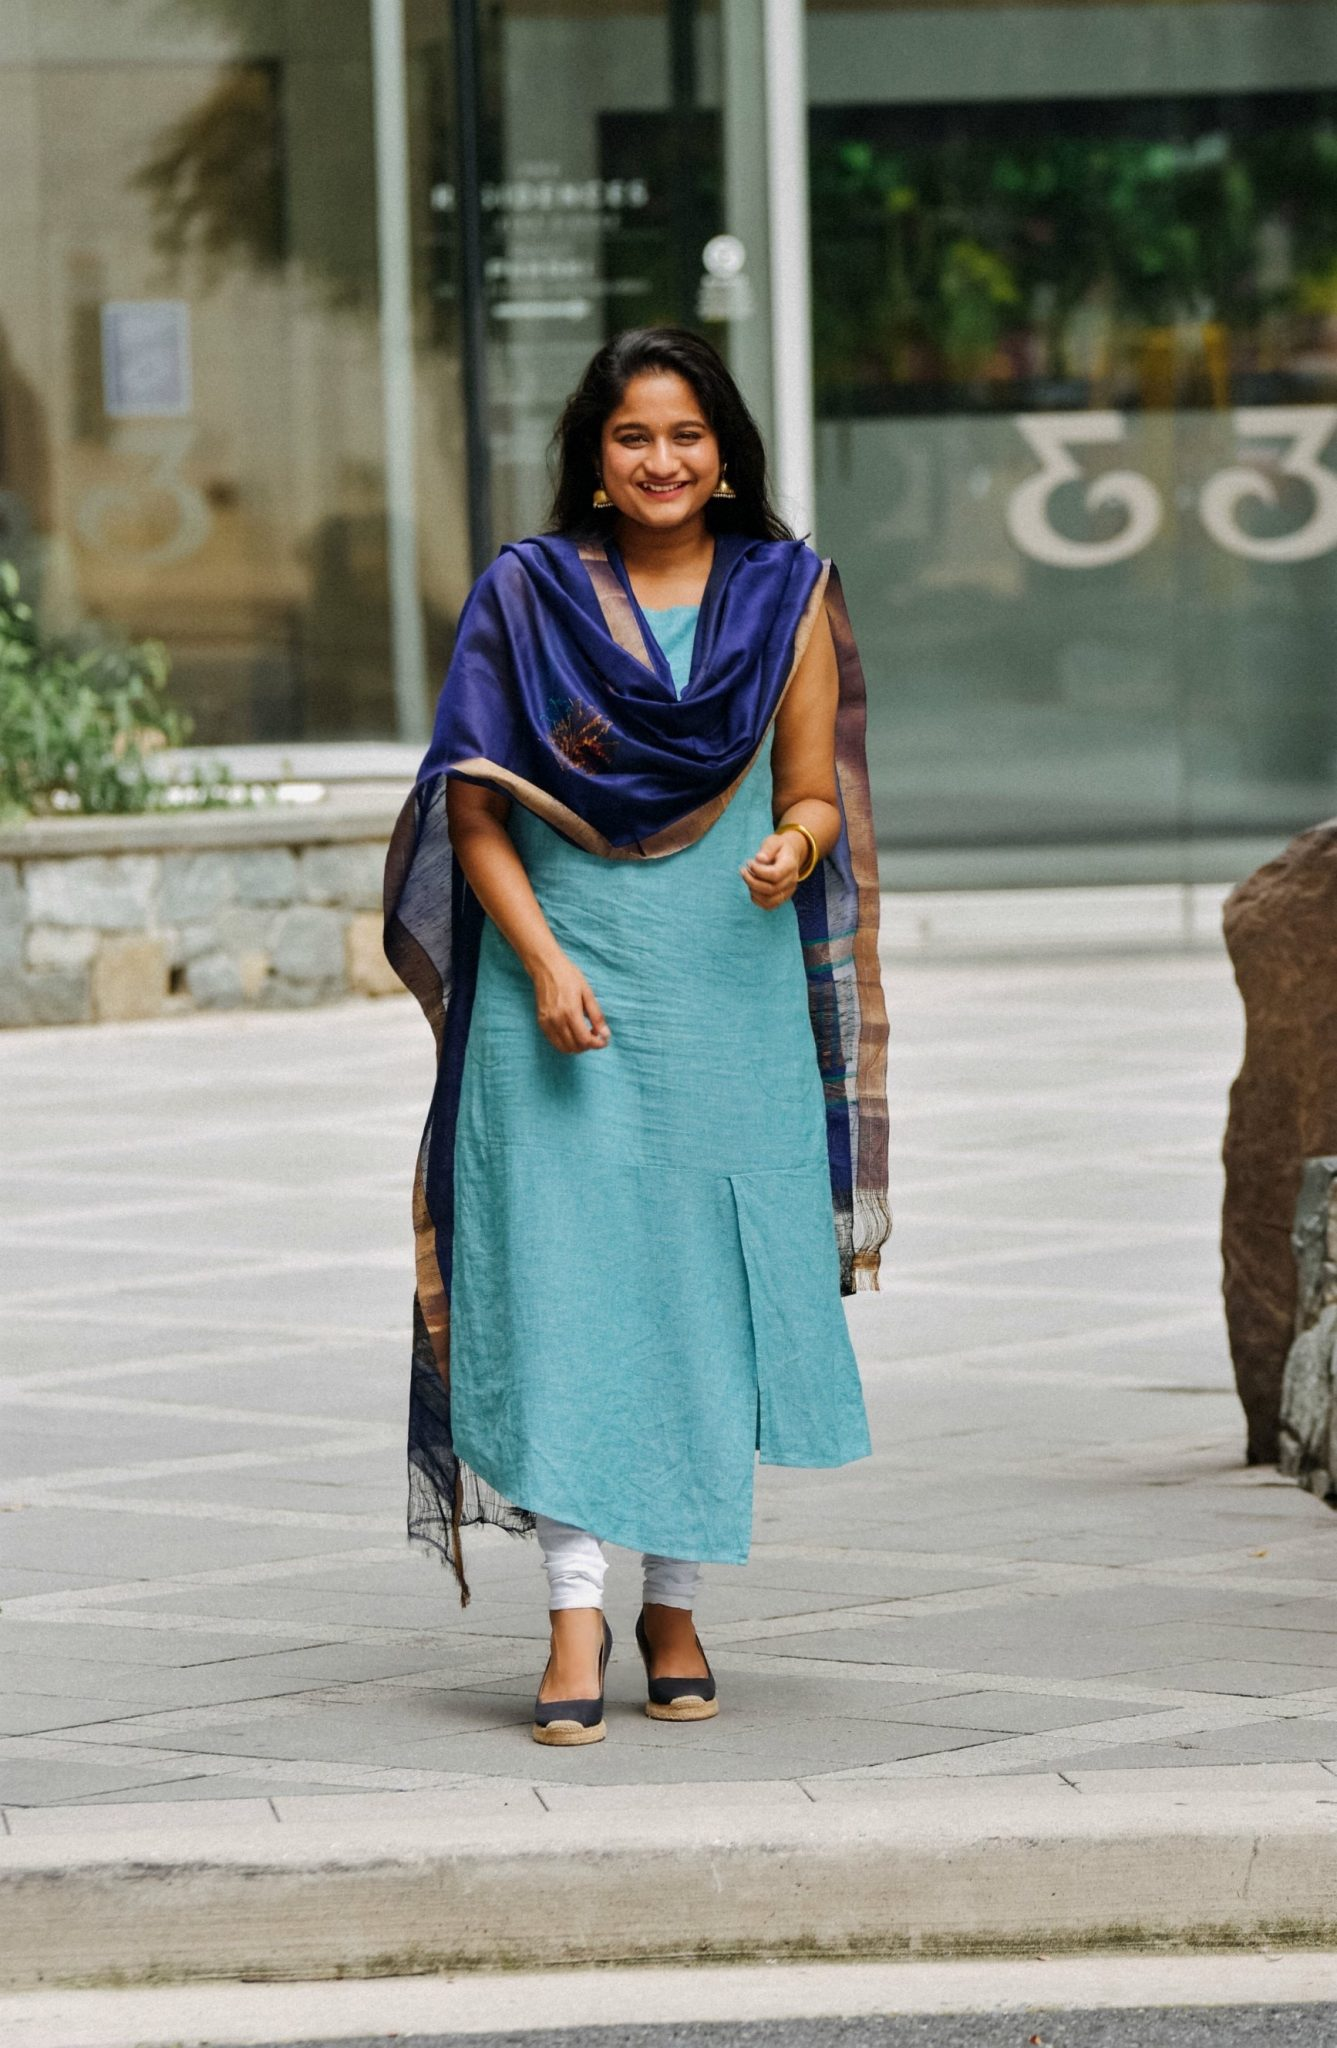 Indo-western churidar outfit-Wearing J.Jill Linen & Rayon Asymmetric Dress, white cotton Chudidar pant, Royal blue silk dupatta | Indo Western by popular Maryland modest fashion blog, Dreaming Loud: image of a woman wearing an Indo Wester outfit with a chudidar, blue silk dupatta, blue linen dress, and gold jhumkas.